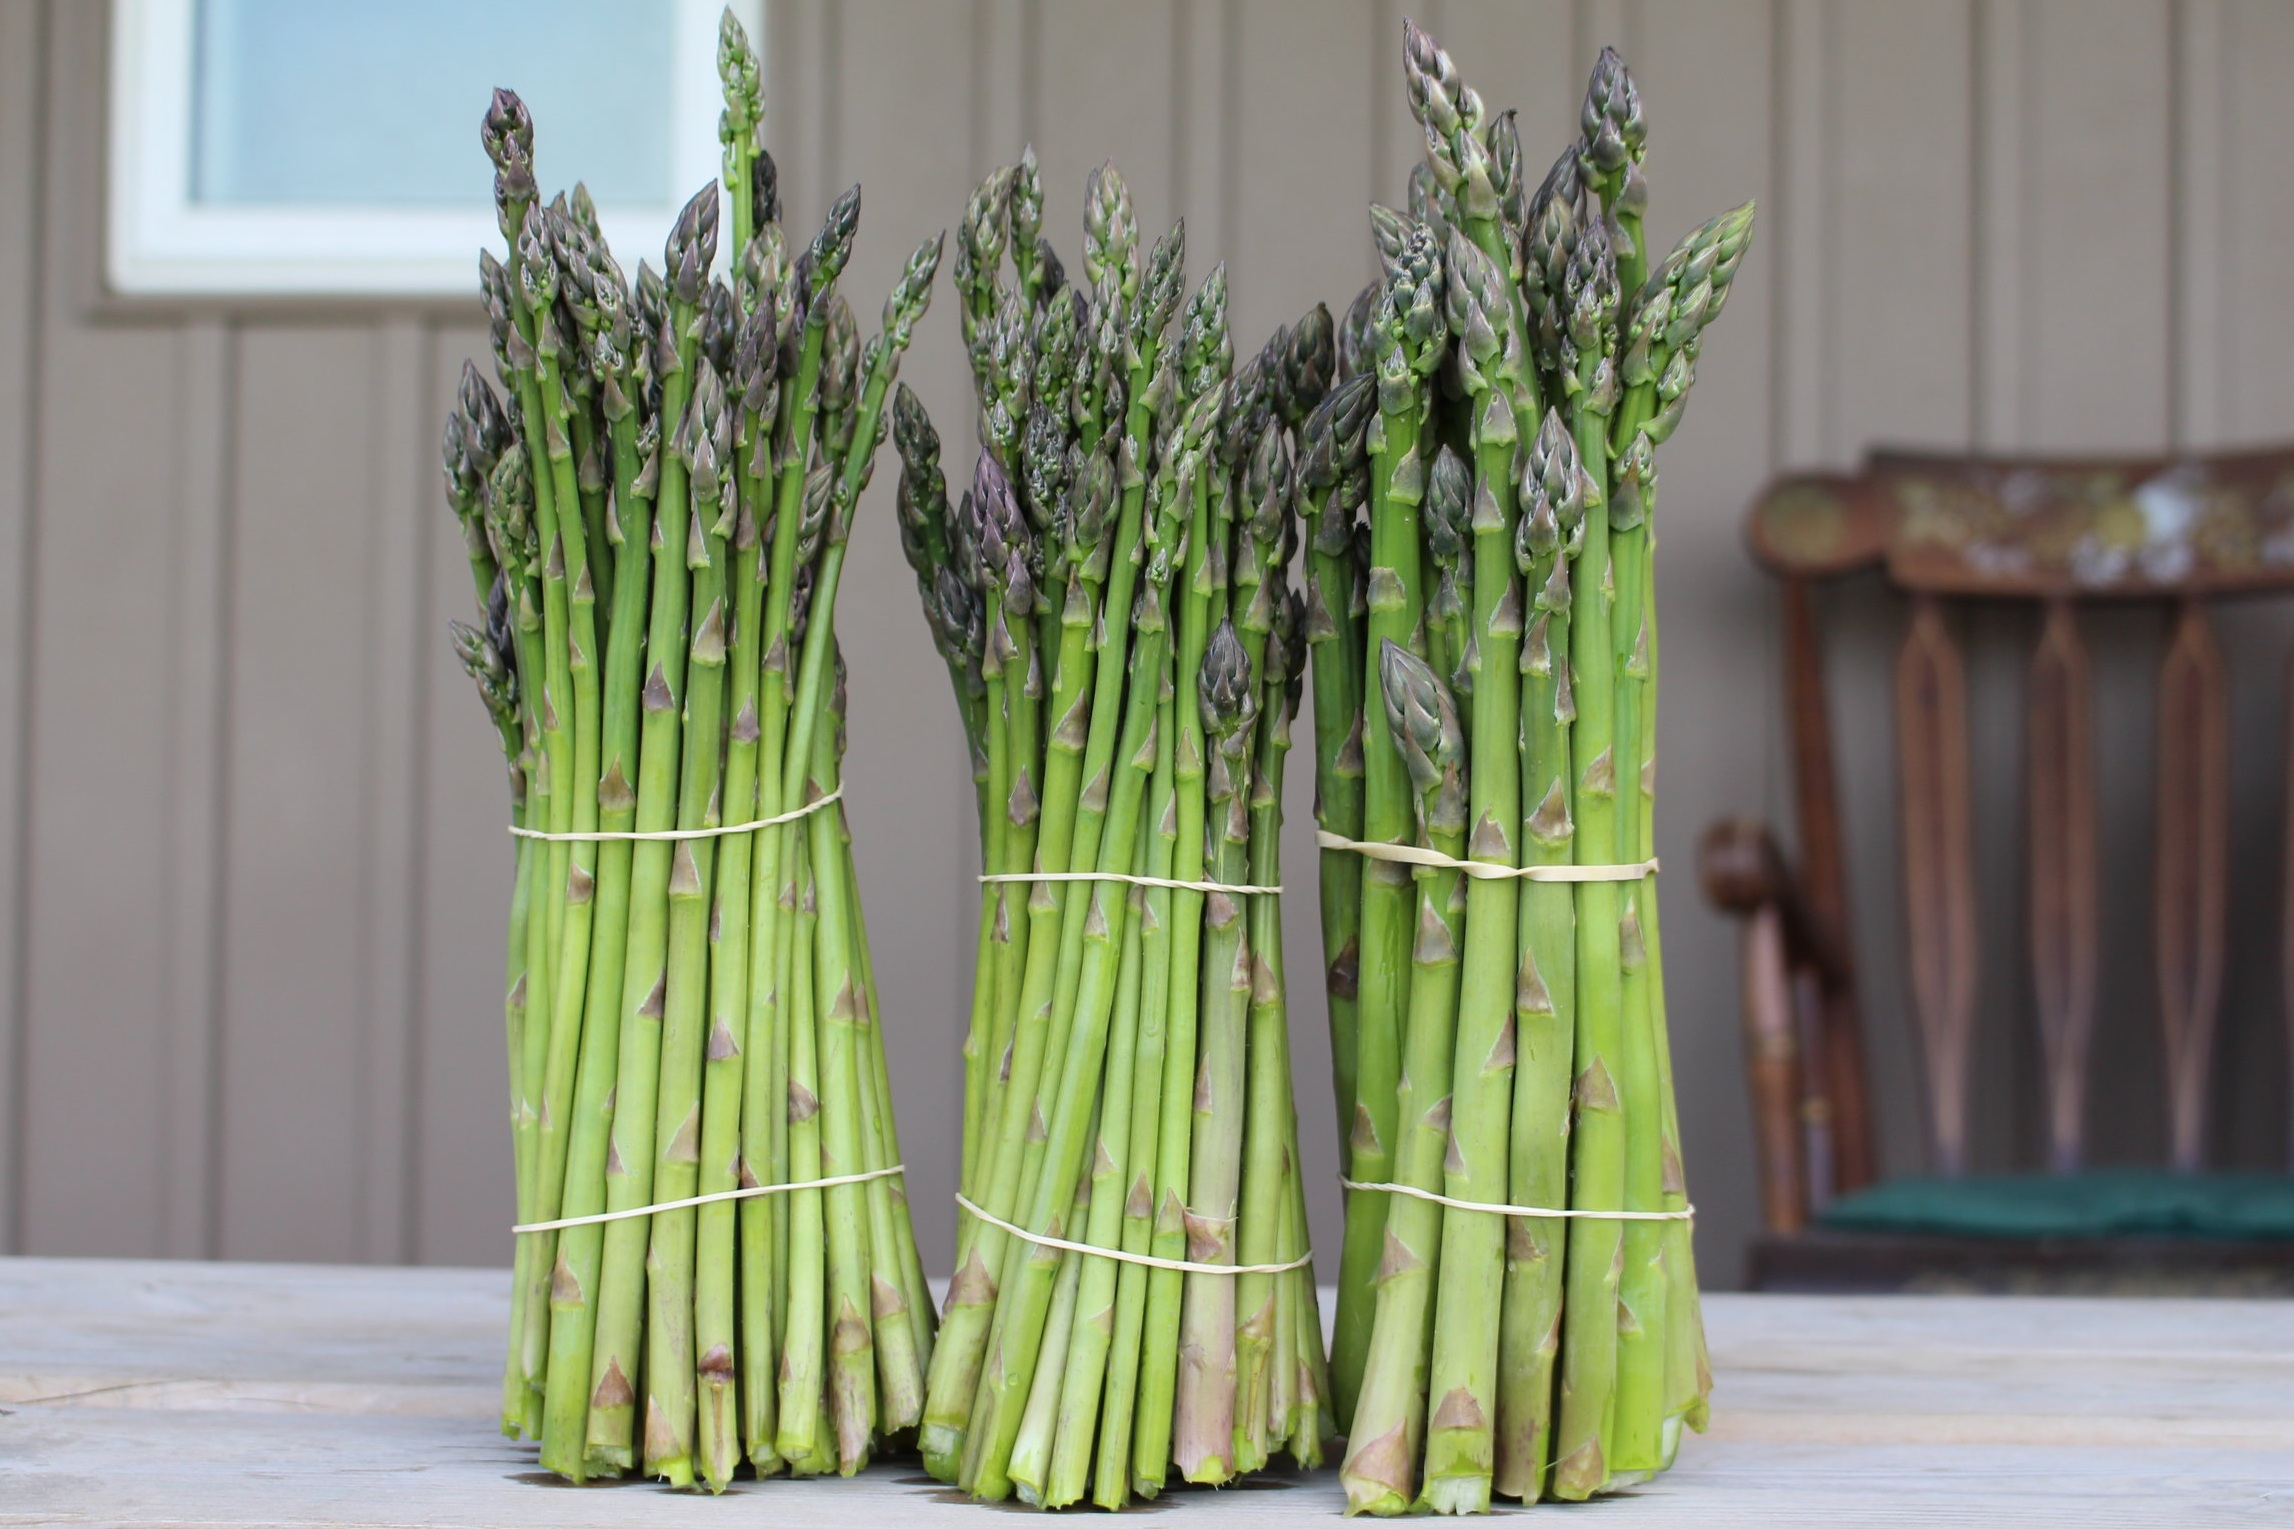 Asparagus   Our fresh picked asparagus is the perfect side dish for your summertime BBQ. With such a versatile vegetable, you are sure to please your guests.